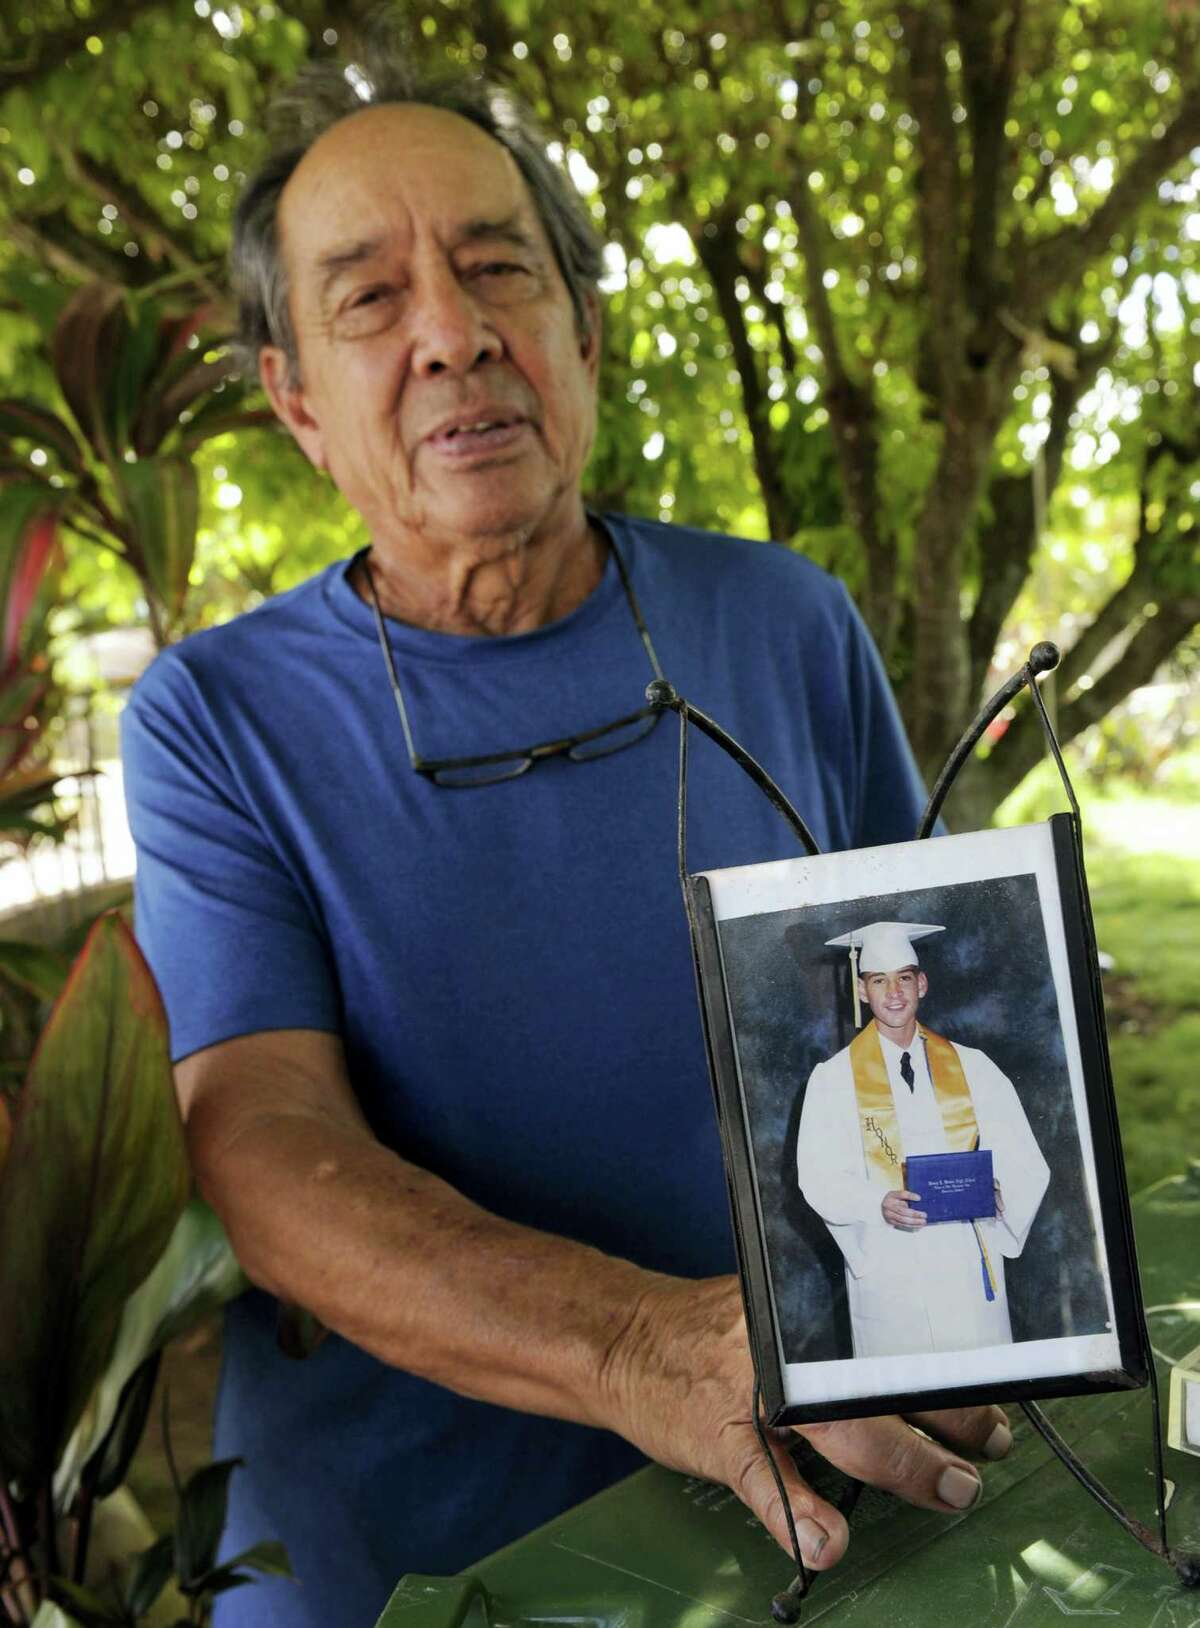 """In this Monday, July 10, 2017 photo, Clifford Kang, father of soldier Ikaika E. Kang, poses with photo of his son in Kailua, Hawaii. Ikaika E. Kang, an active-duty U.S. soldier, was arrested over the weekend on terrorism charges that accuse him of pledging allegiance to the Islamic State group and saying he wanted to """"kill a bunch of people."""""""